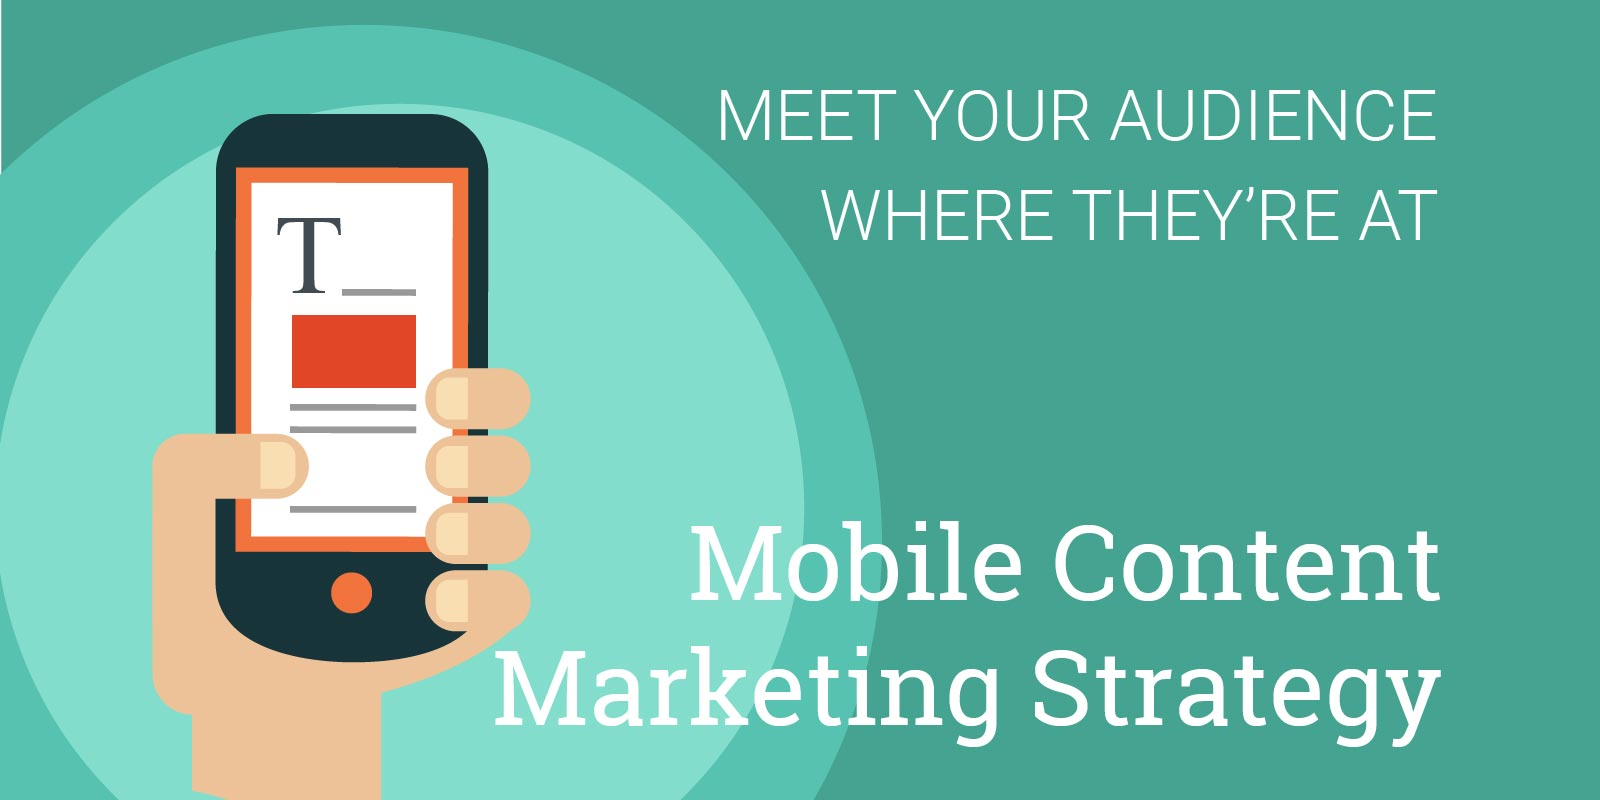 5 best practices for a mobile content marketing strategy